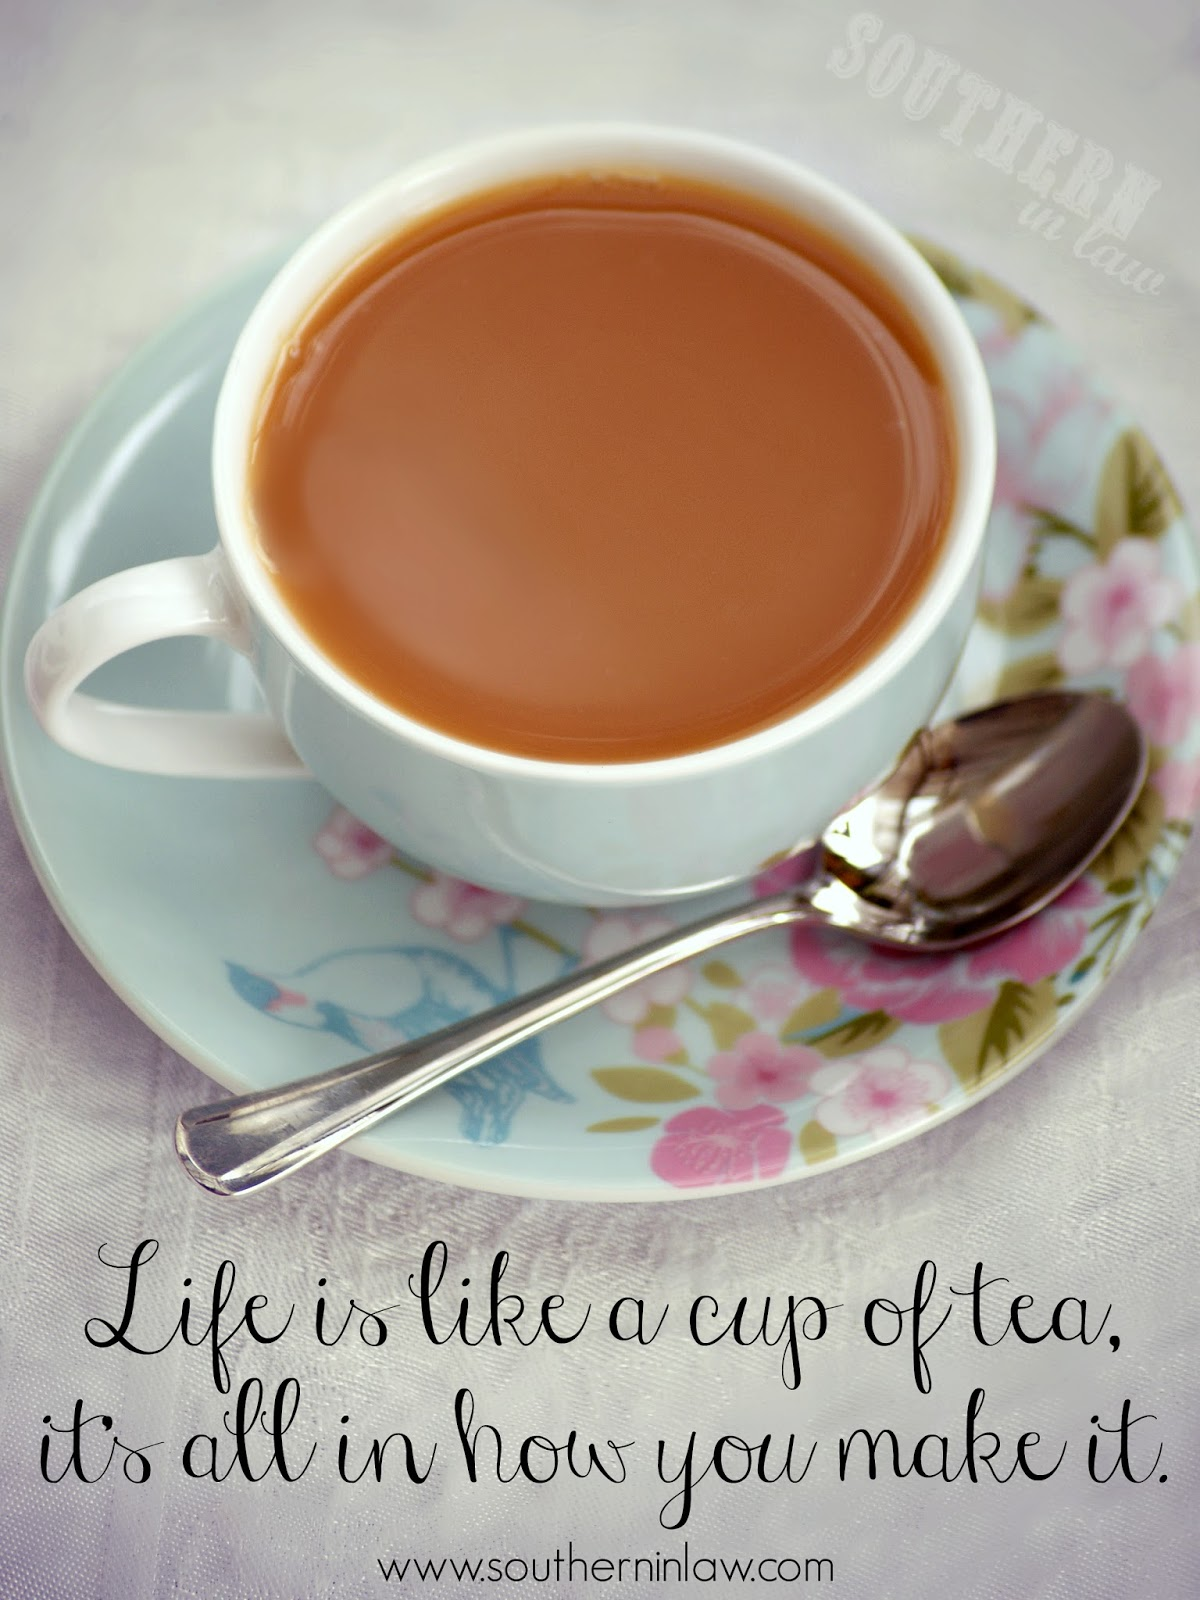 Quotes about English tea 54 quotes